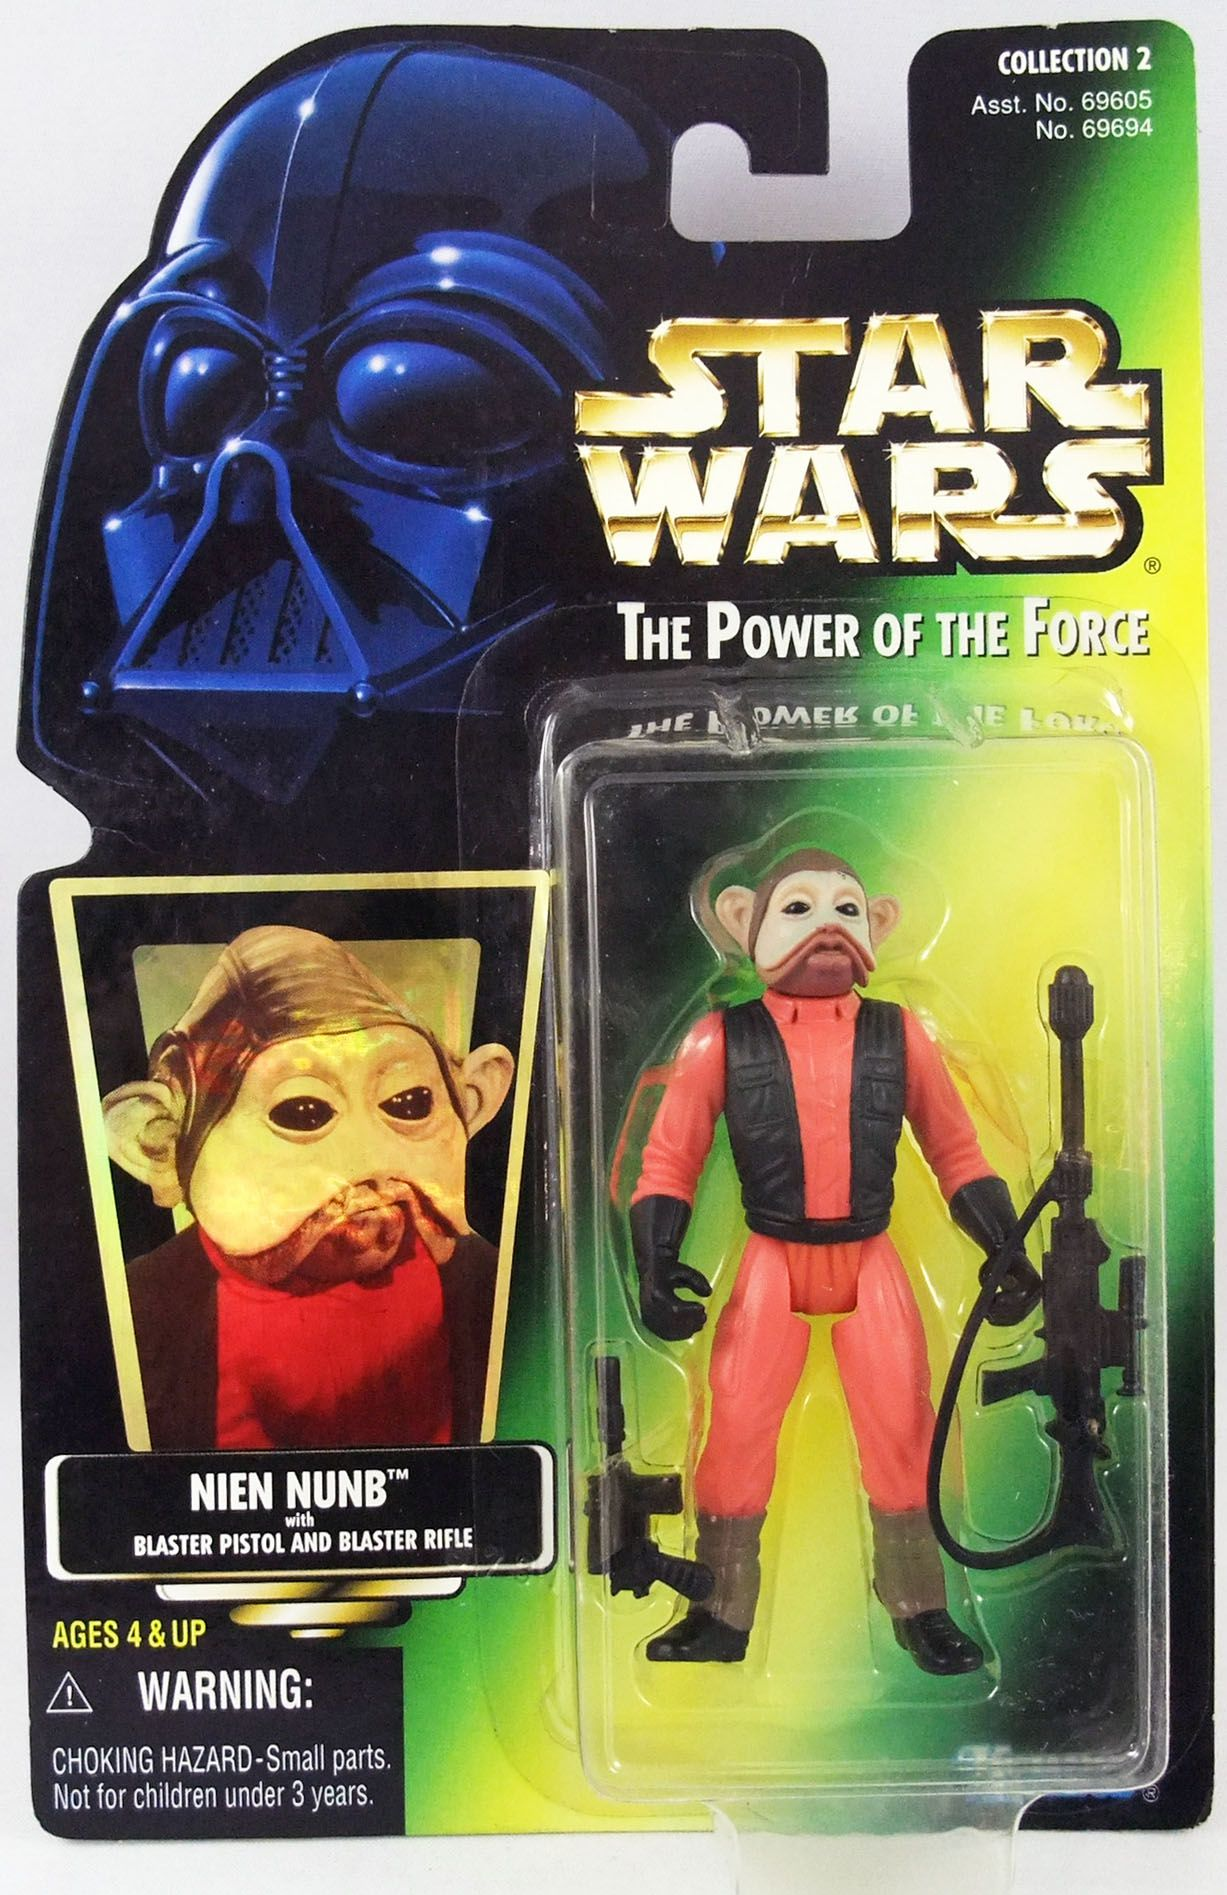 Star Wars (The Power of the Force) - Kenner - Nien Nunb